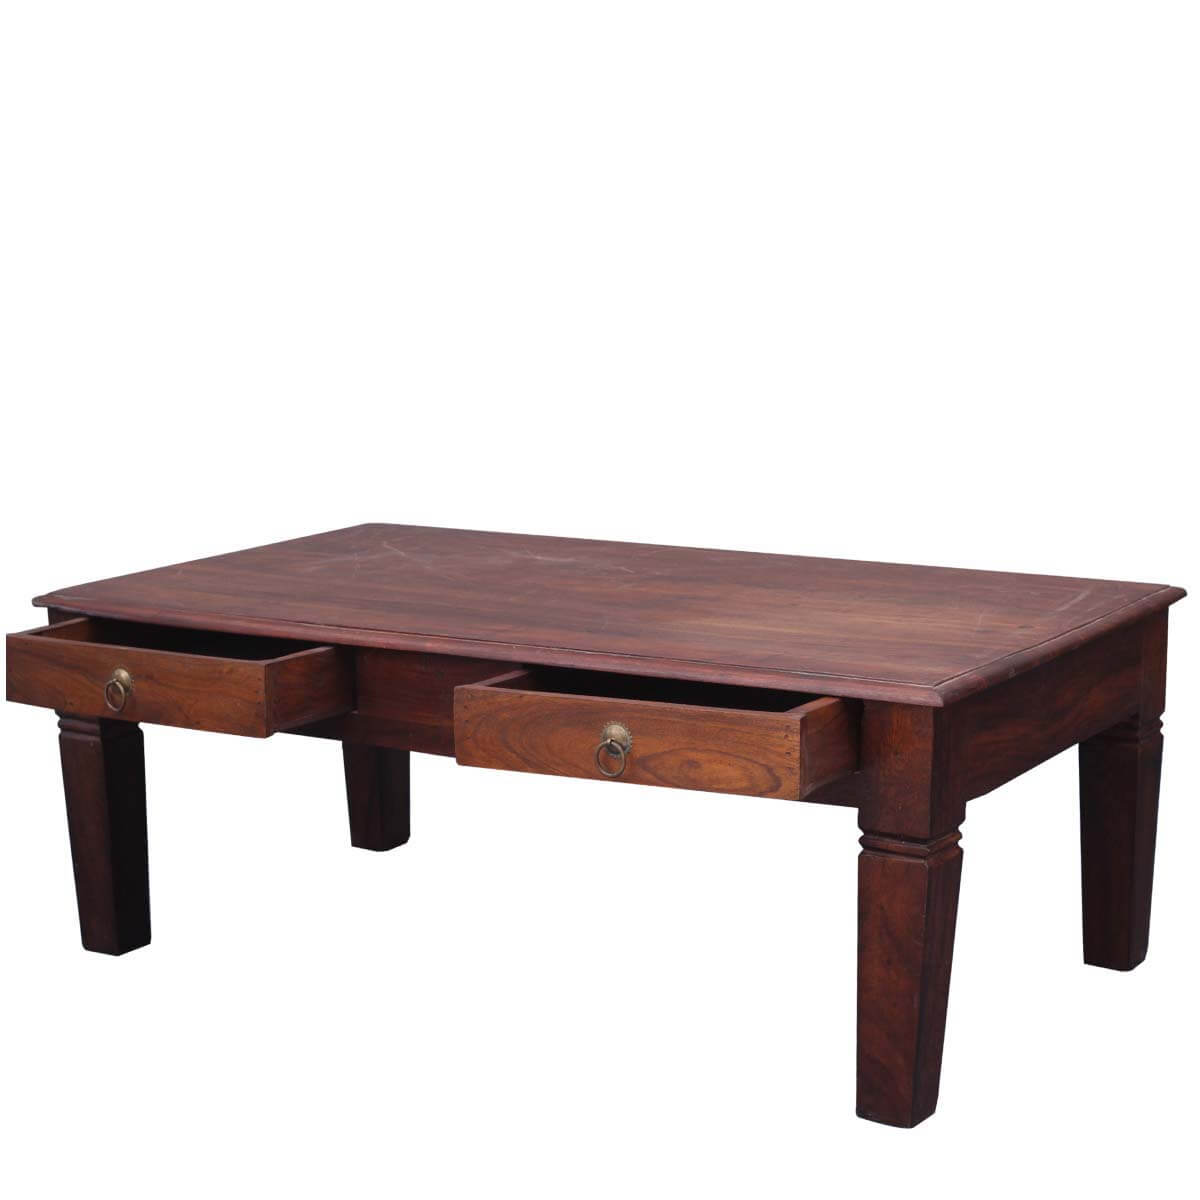 Solid wood rustic coffee table w storage drawers for Solid wood coffee table